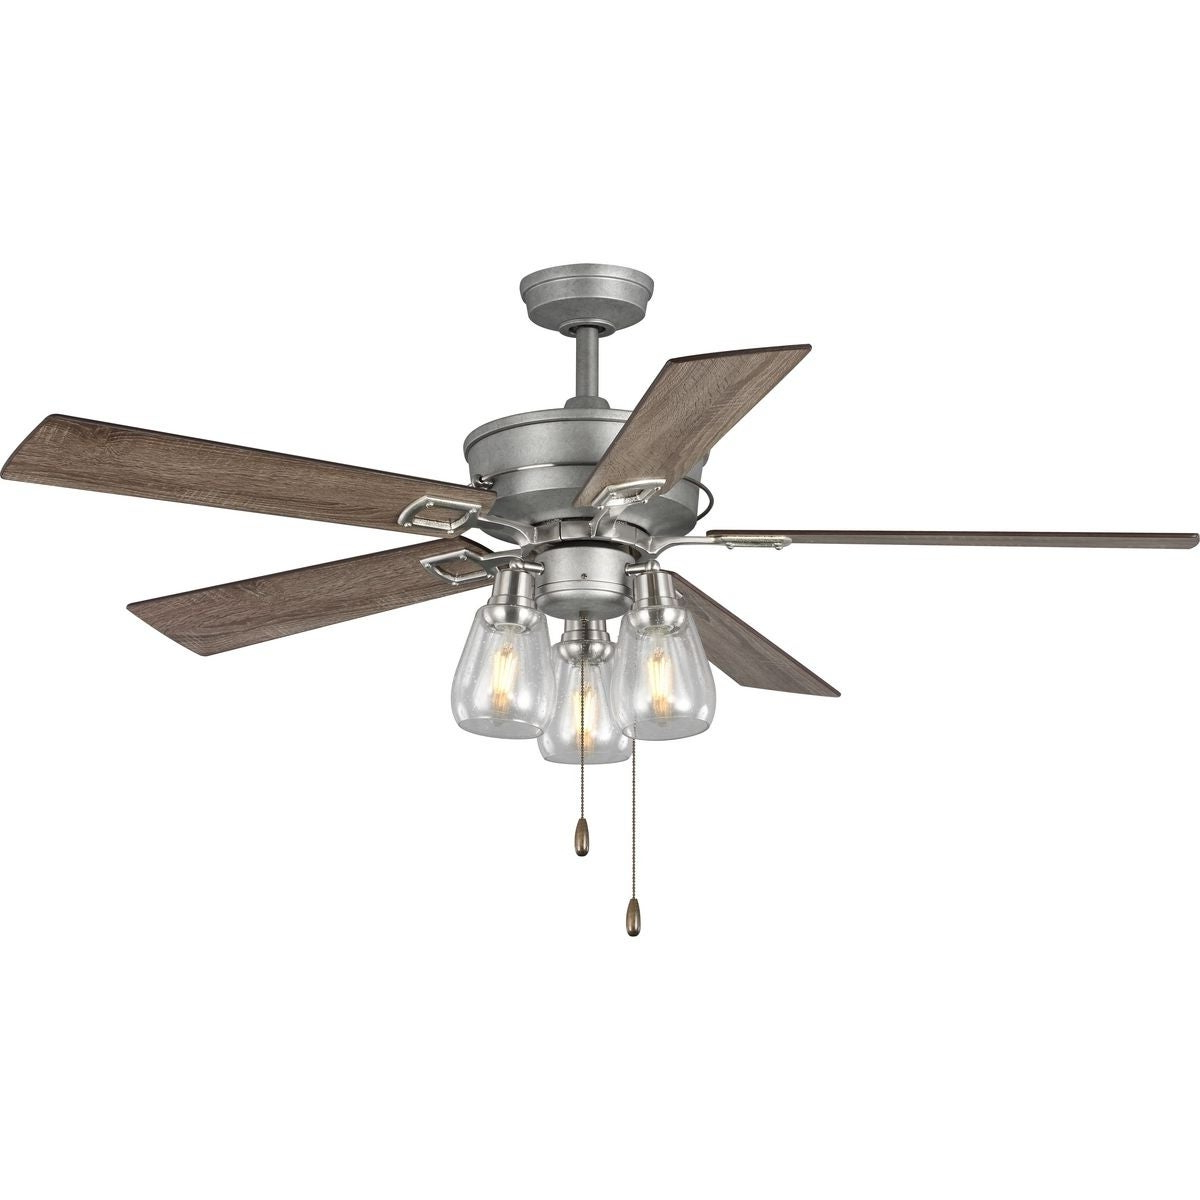 """Clybourn 5 Blade Ceiling Fans Inside Current Teasley 56"""" Five Blade Ceiling Fan With Glass Shades (View 4 of 20)"""